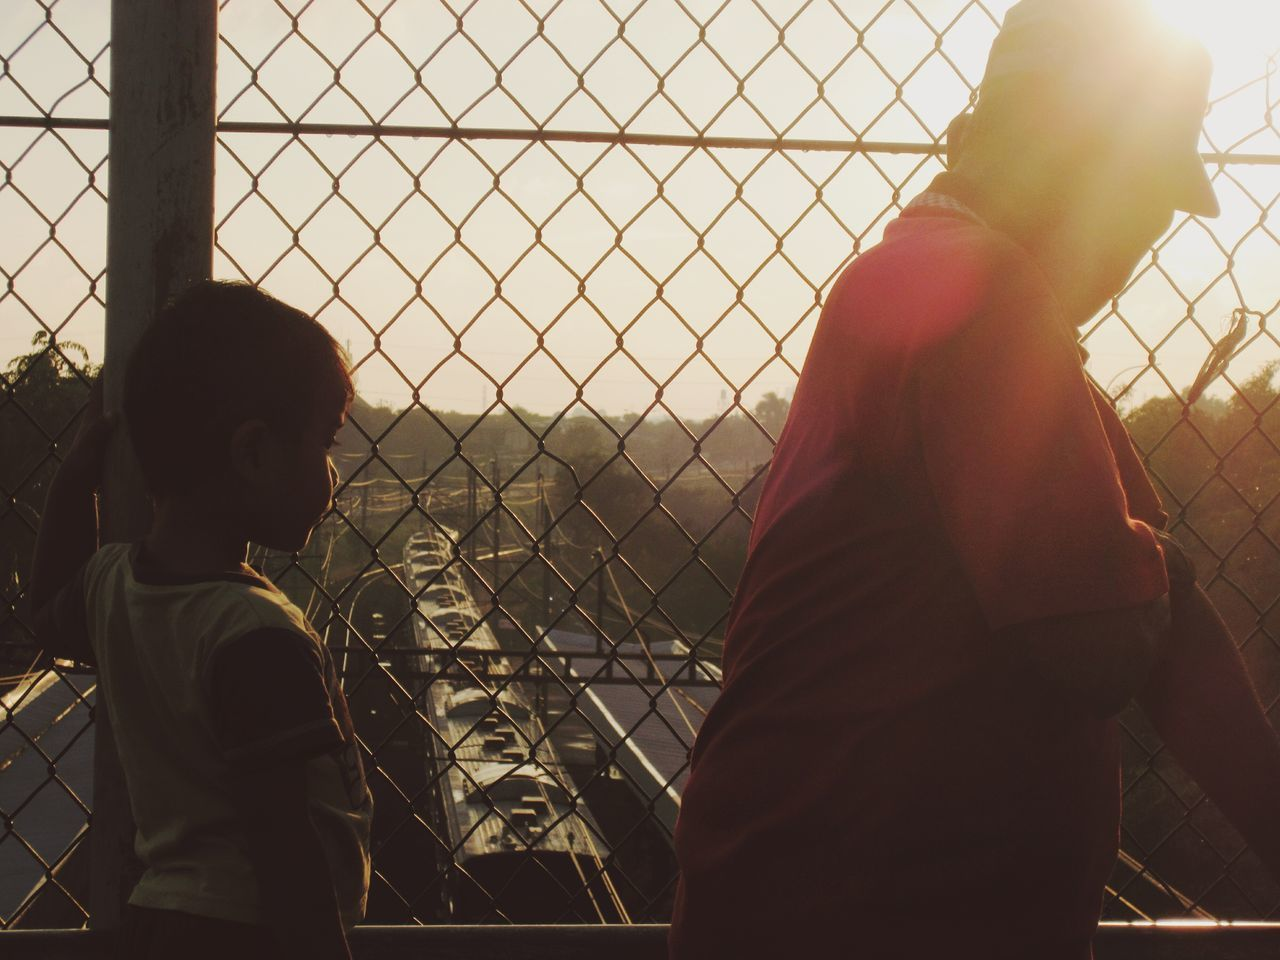 chainlink fence, real people, two people, togetherness, standing, day, outdoors, childhood, city, sky, close-up, friendship, people